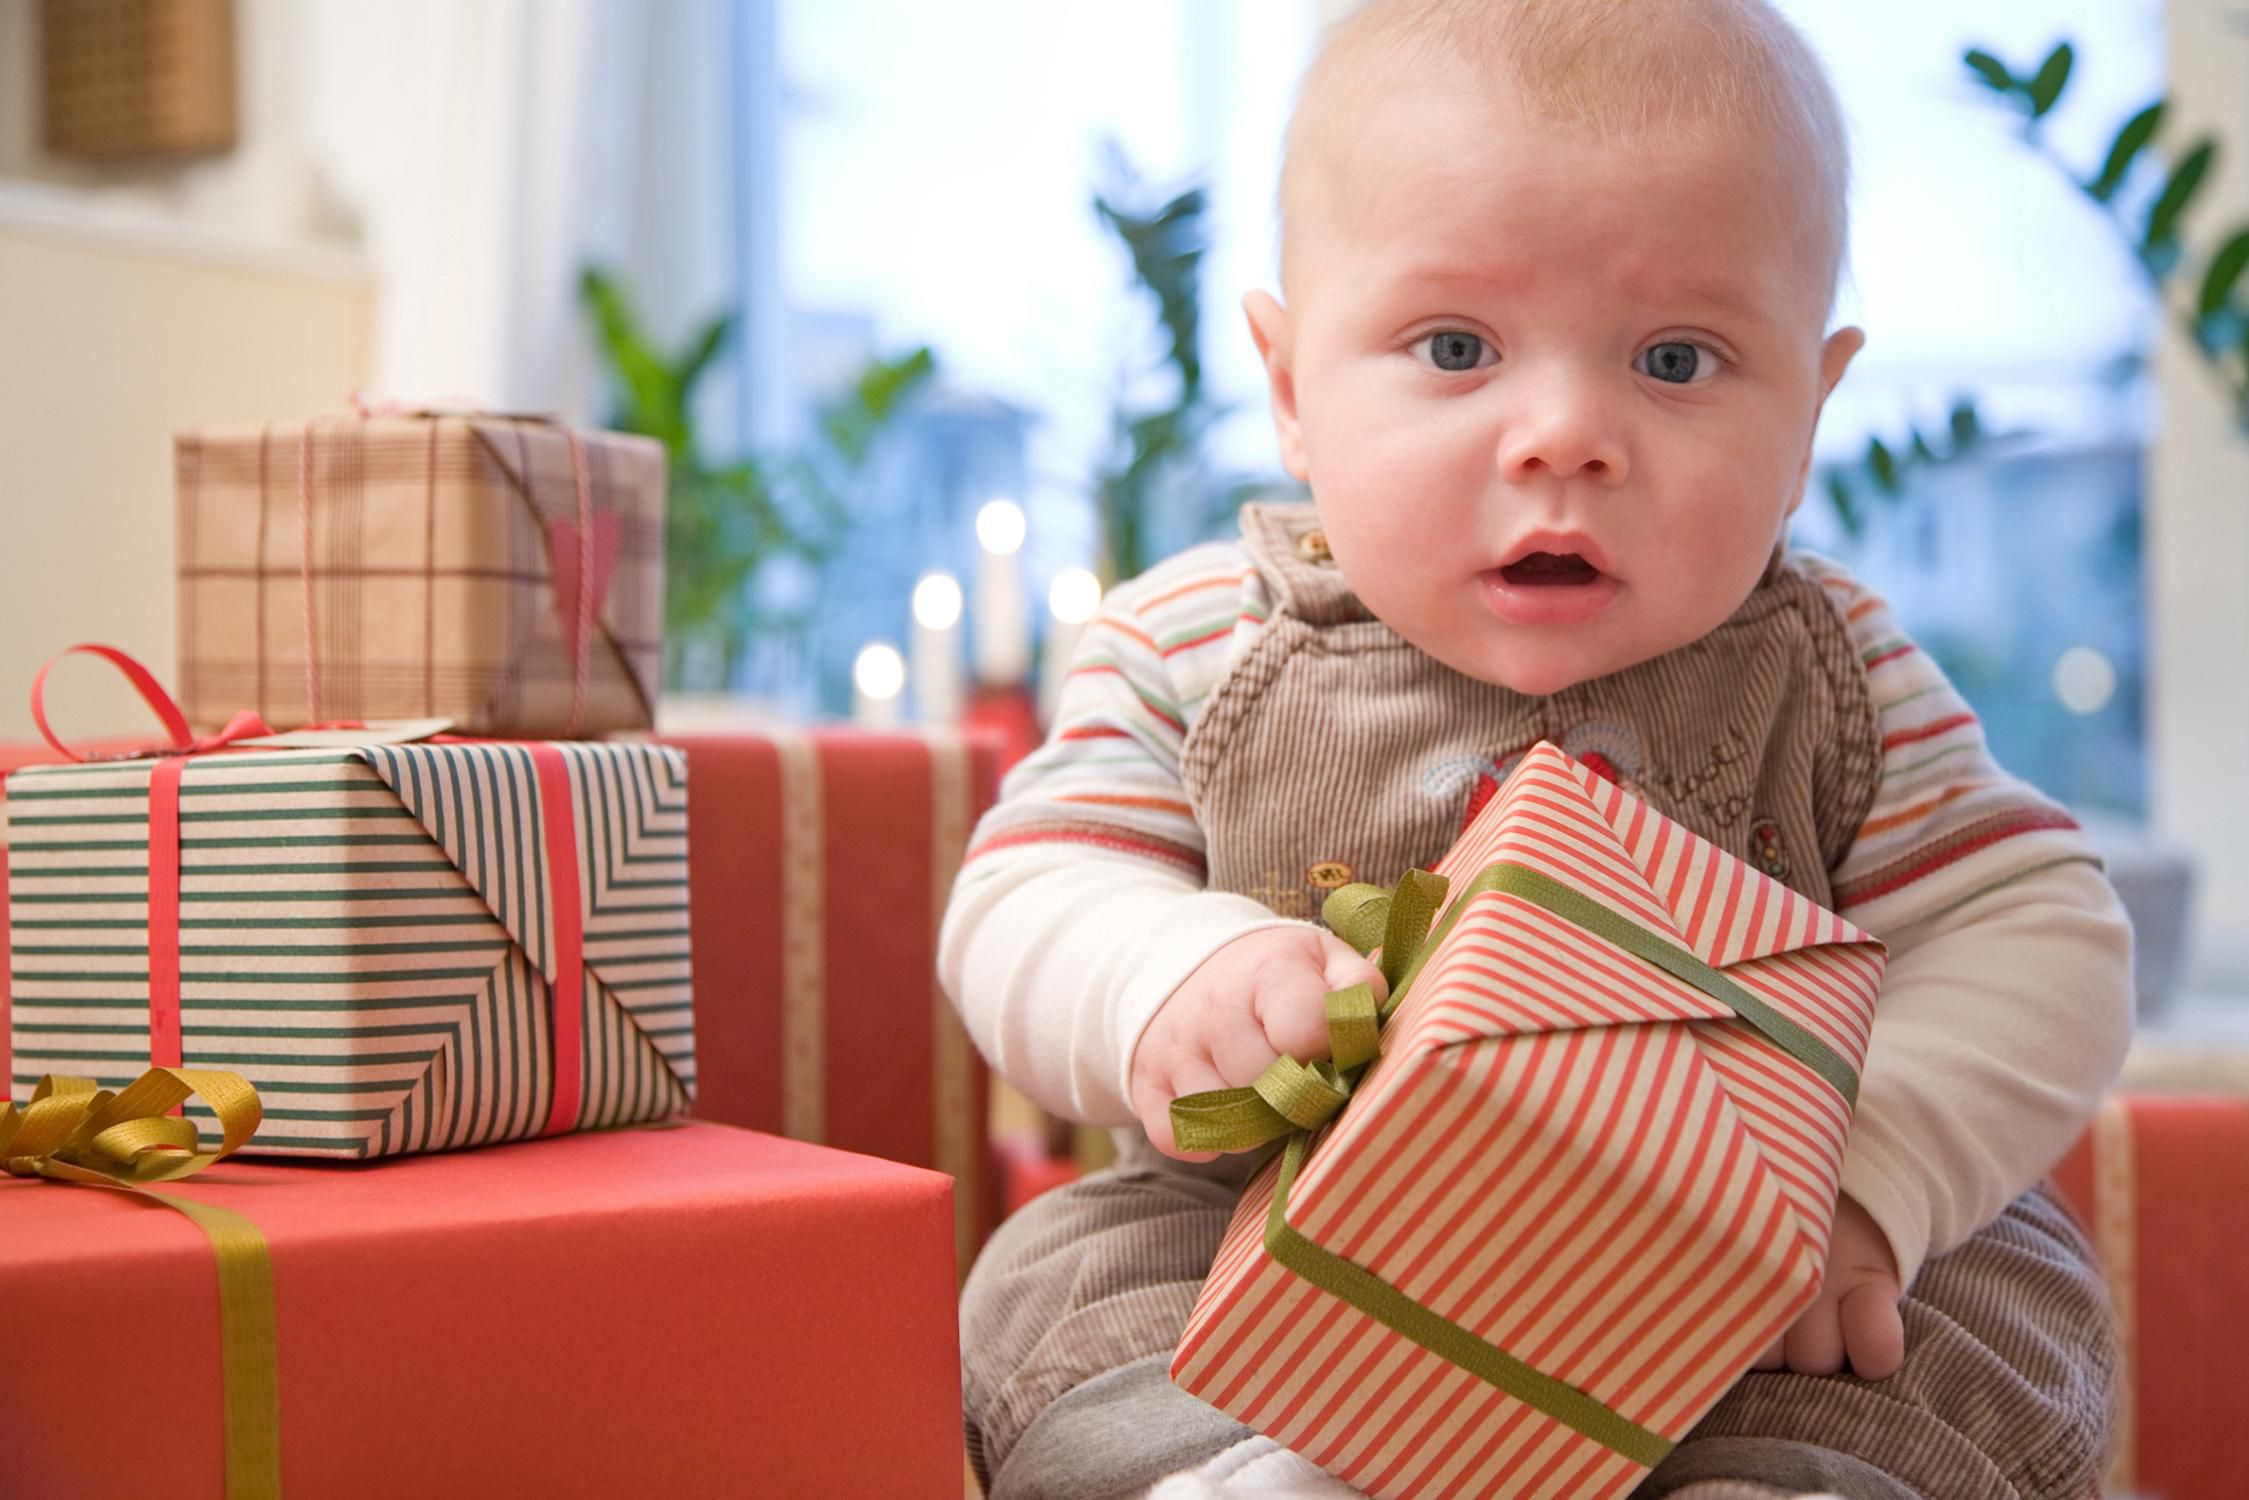 Top 8 Gift Ideas for 9 Month Old Babies